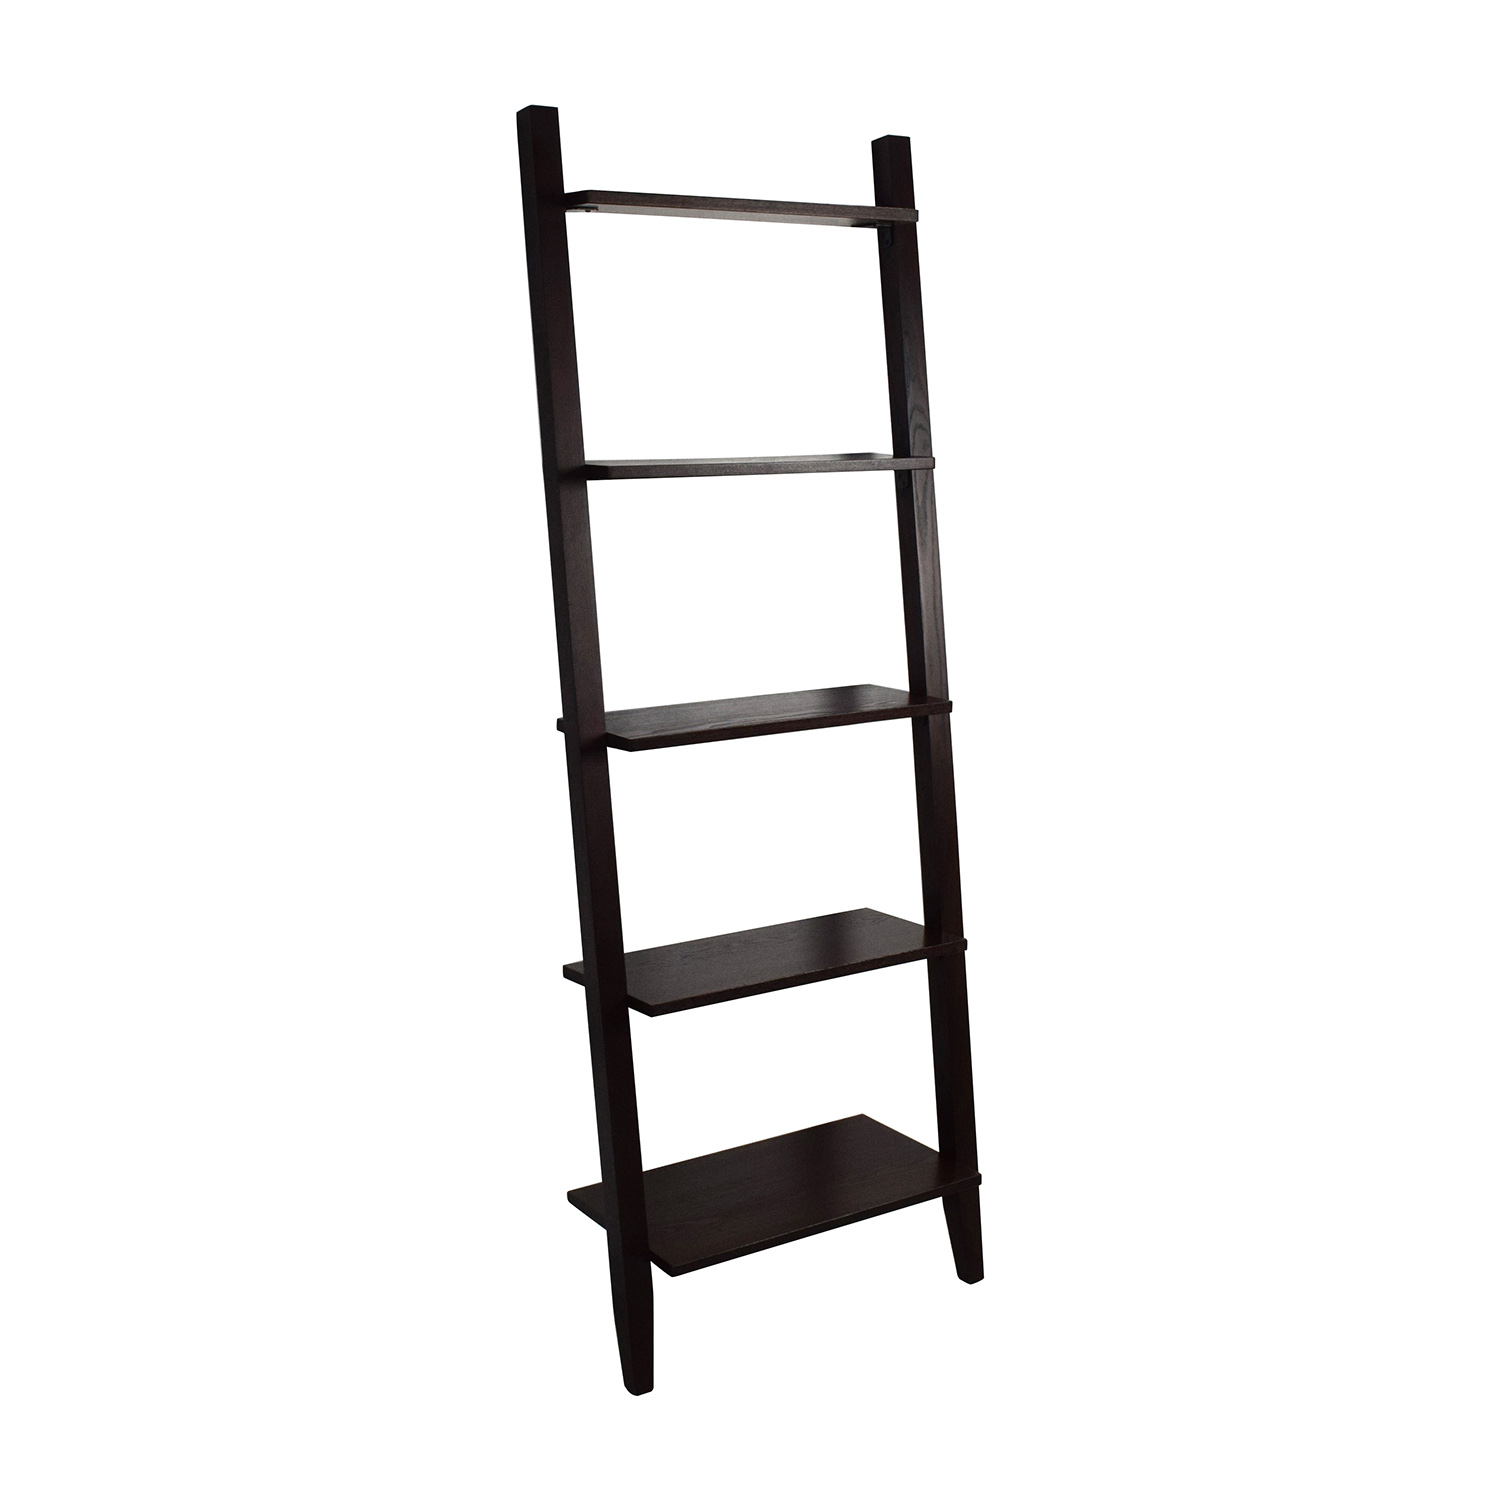 shop Crate and Barrel Crate & Barrel Wooden Leaning Shelves online